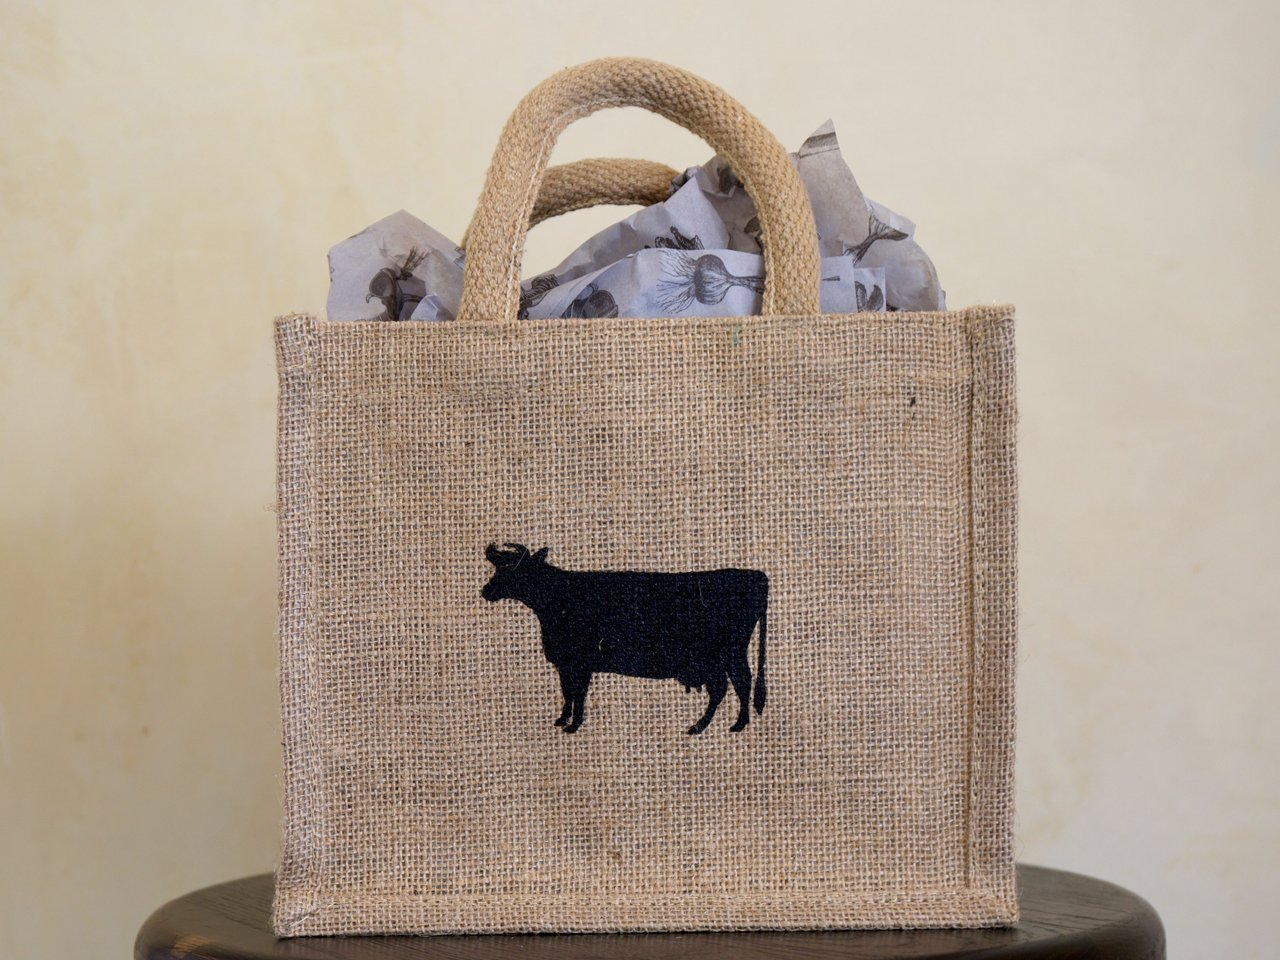 Blue Hill Jute Gift Totes ($6 to $10)